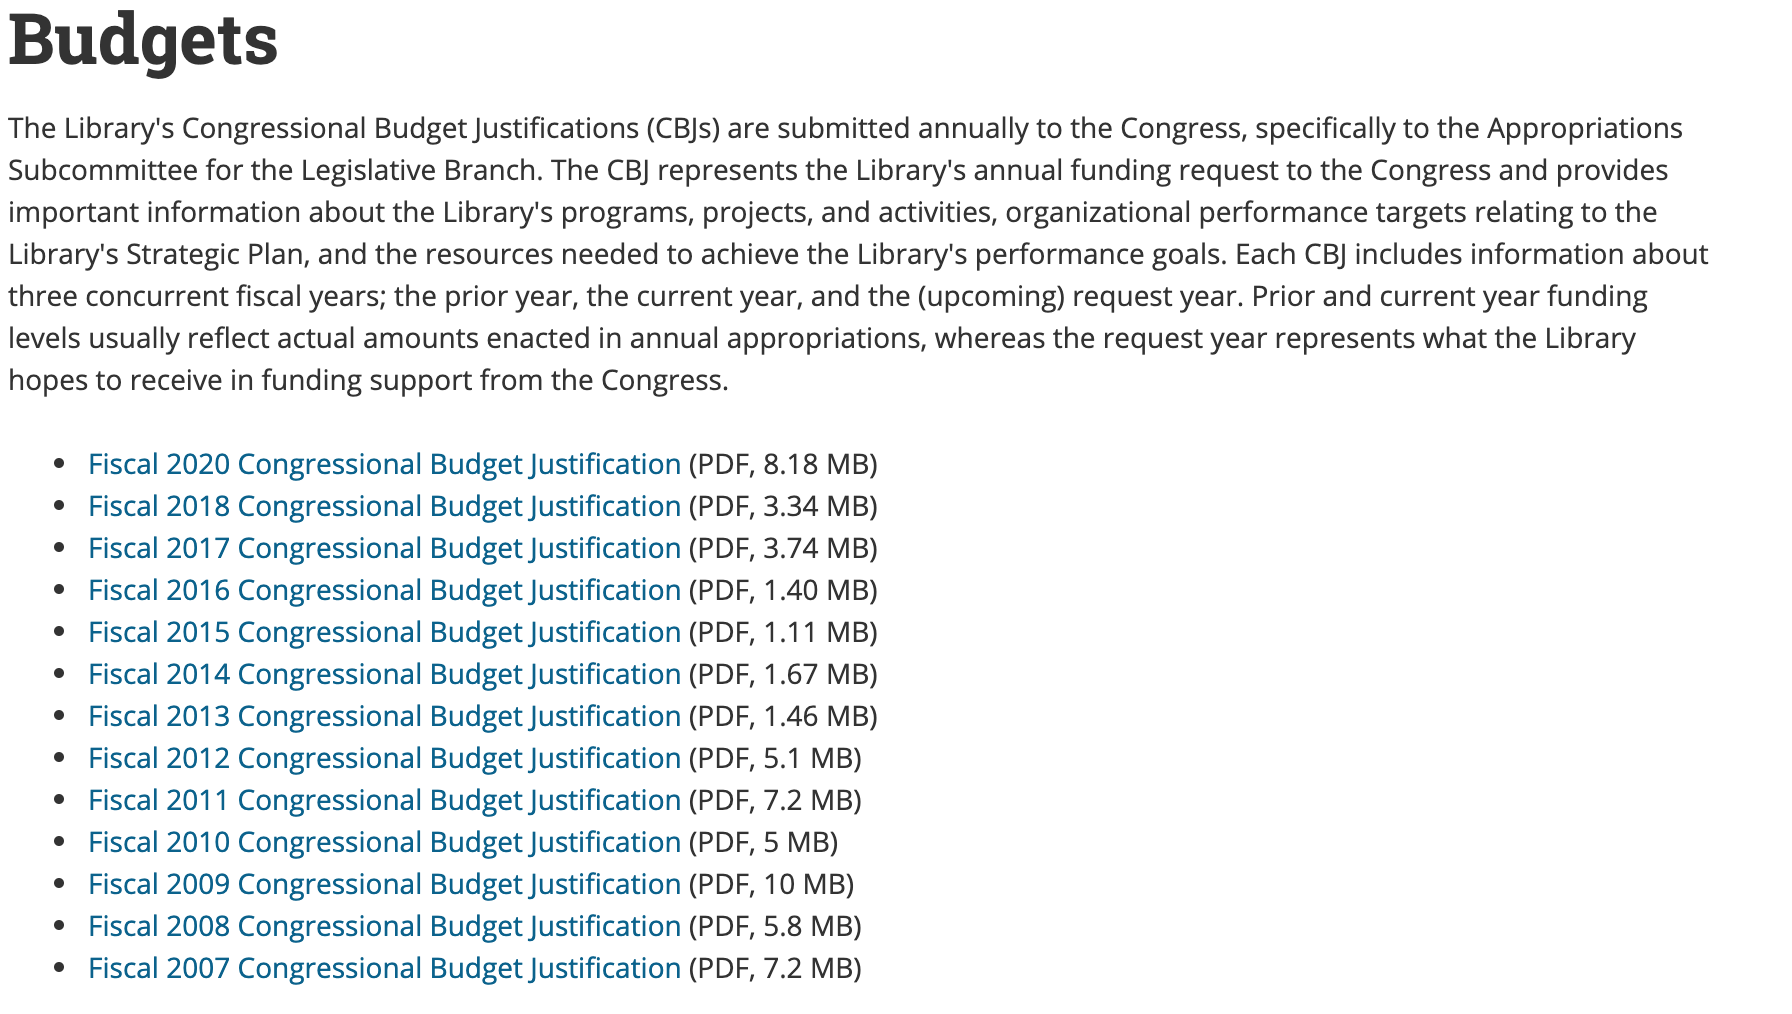 CONGRESSIONAL BUDGET JUSTIFICATIONS accessible on the Library of Congress website